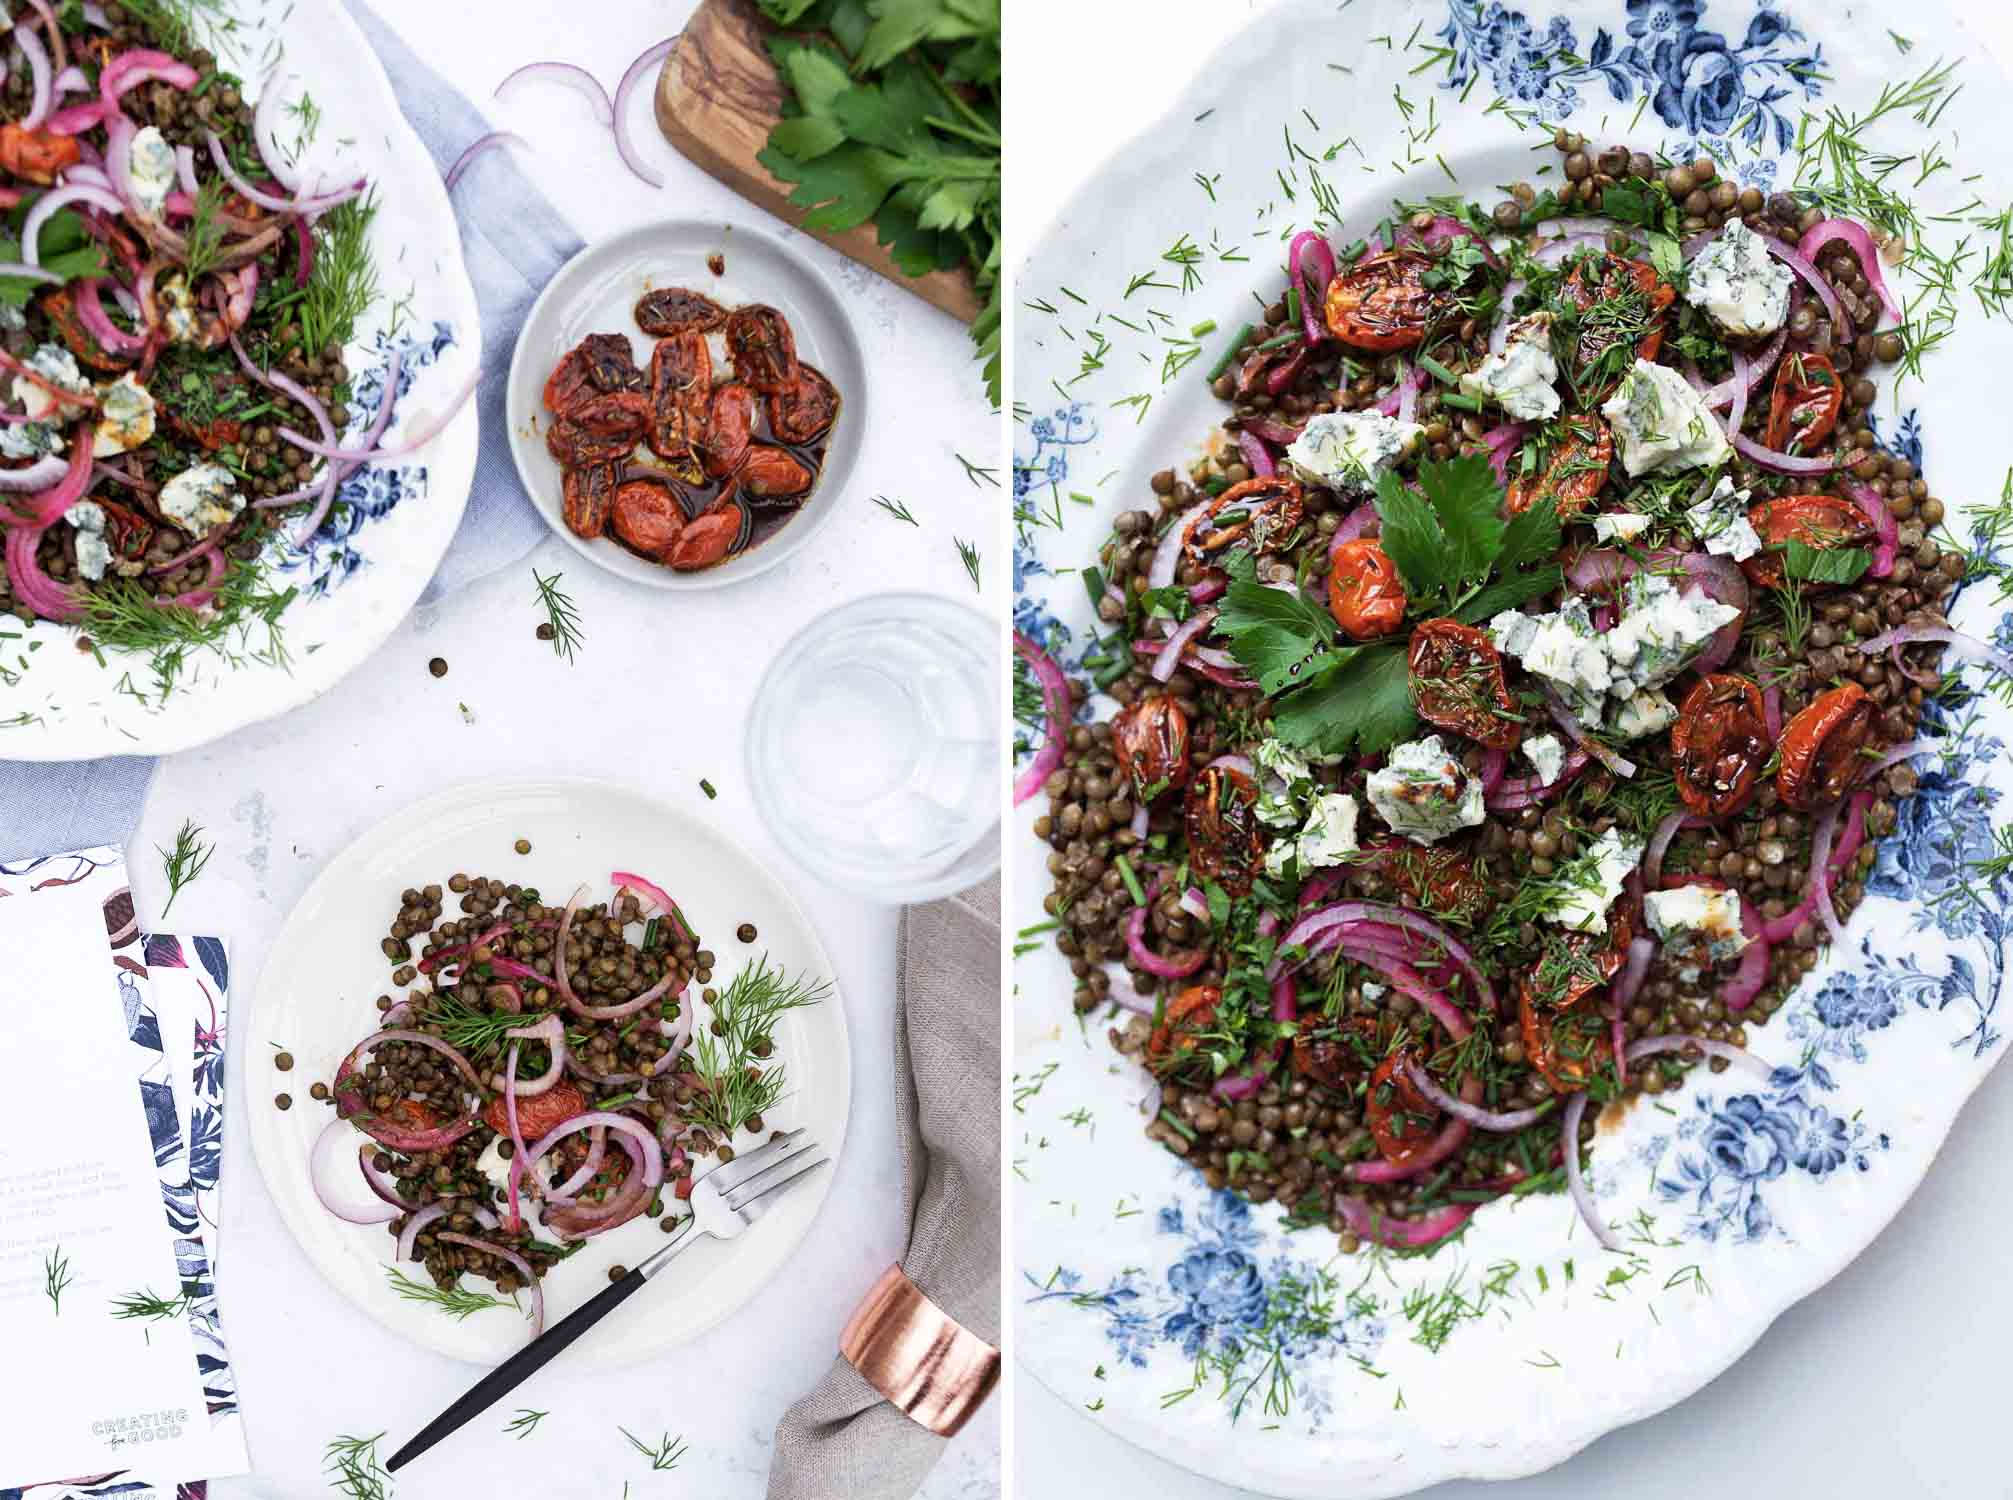 Yotam Ottolenghi recipe for Castelluccio lentils with tomatoes and Gorgonzola Salad